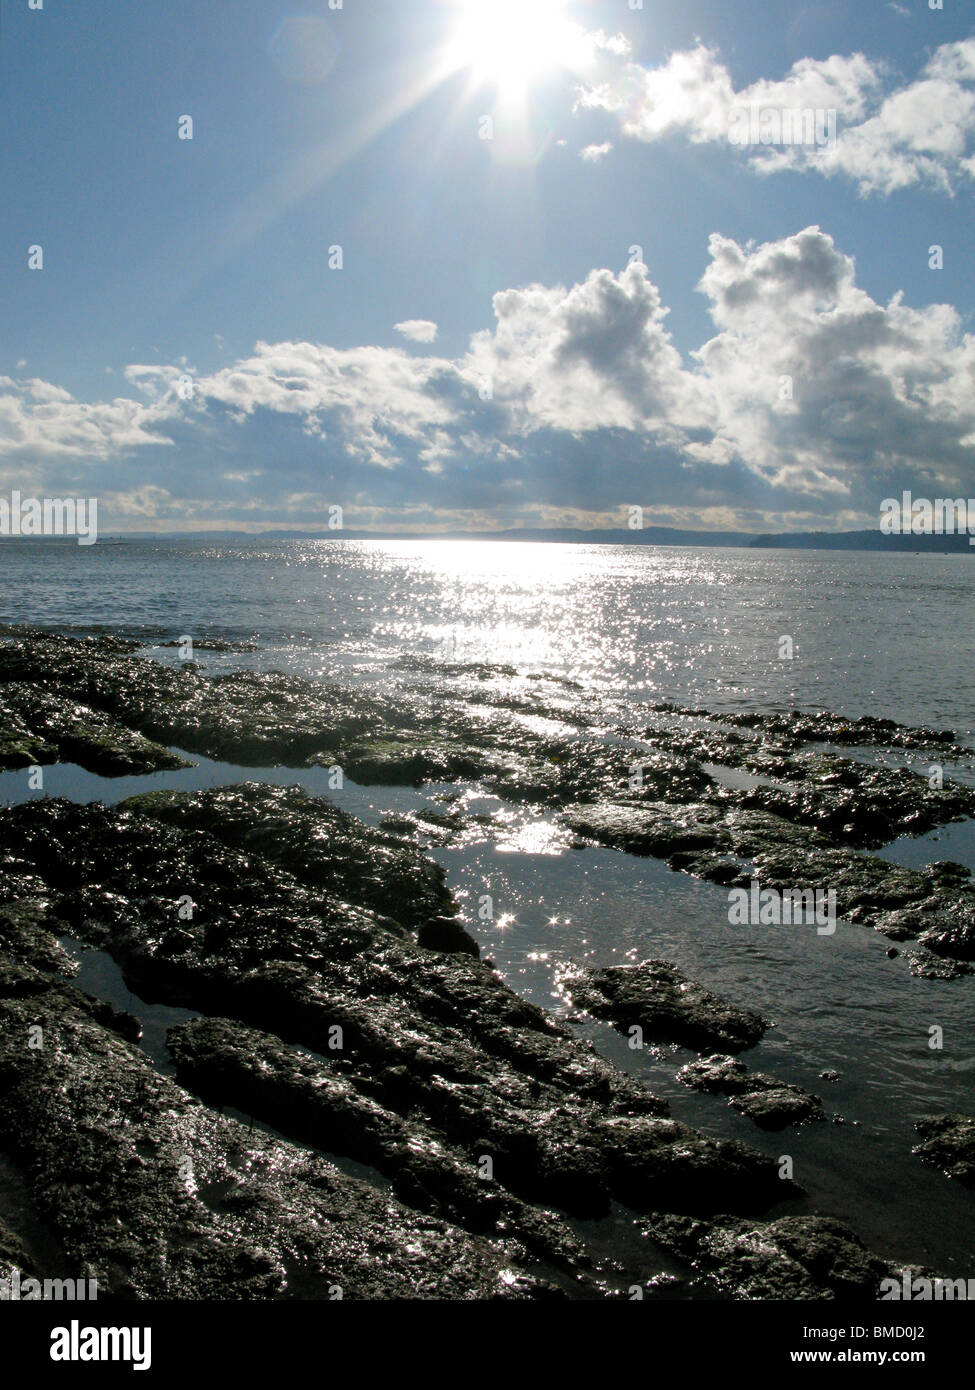 The sun shines on some beach rocks and the sea. The sky is blue with patches of cloud. Stock Photo